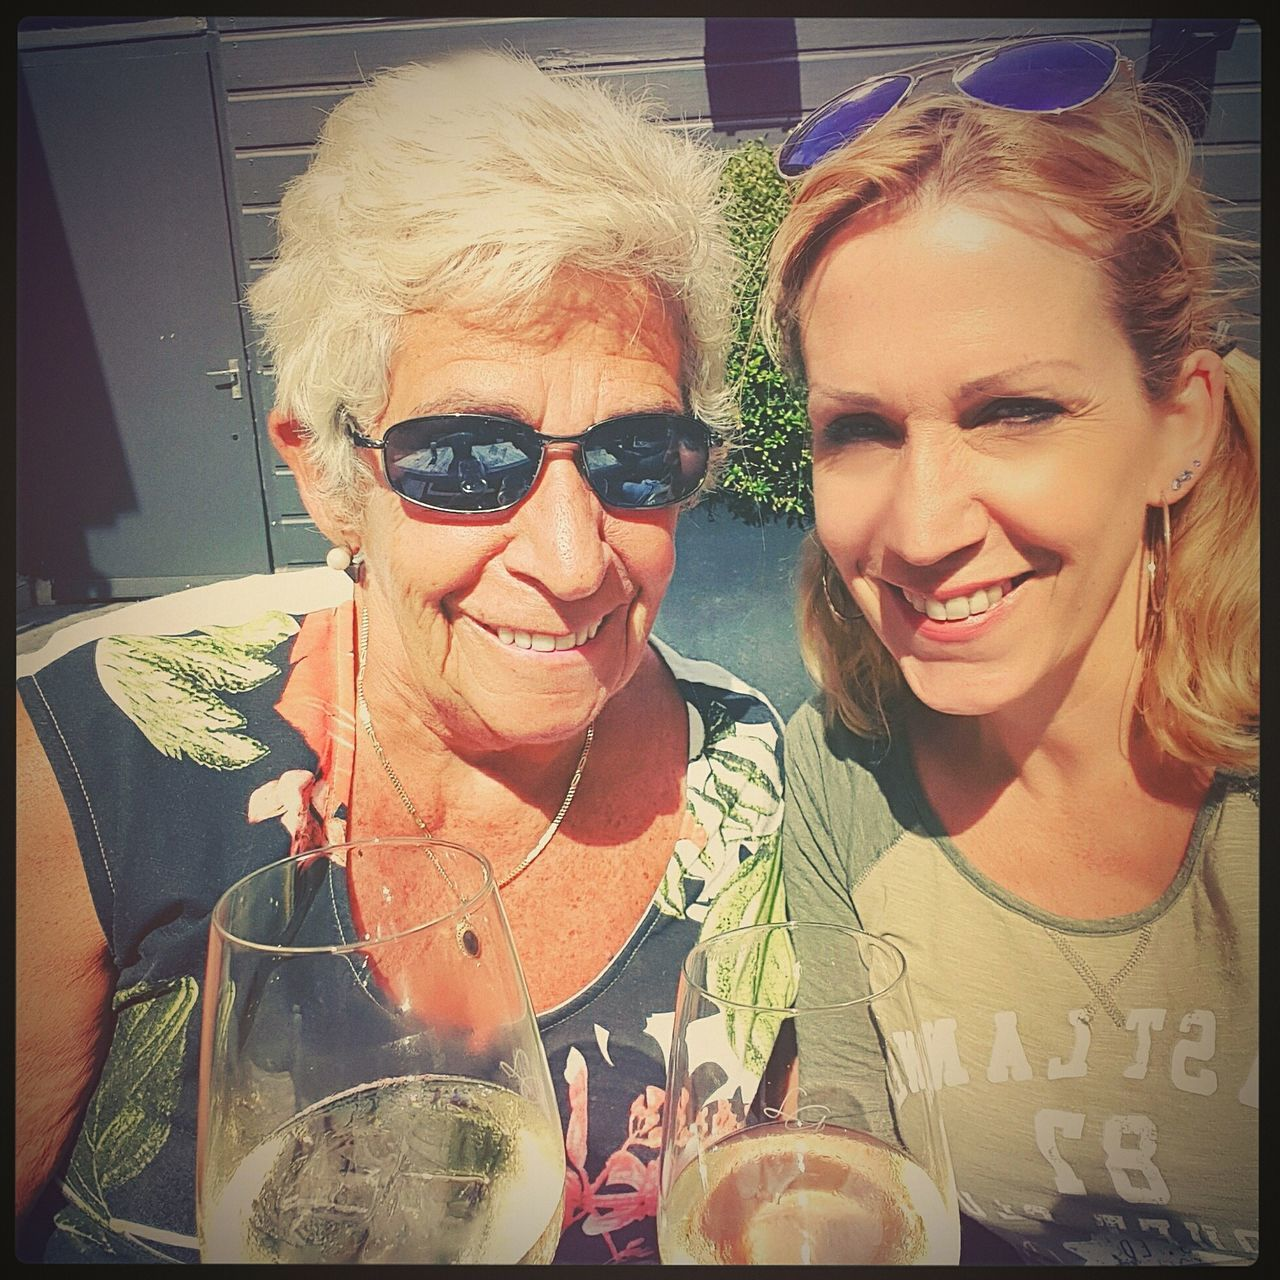 Meandmymom Family Time Missinghim Dadinheaven DaybyDay Life Is Good DrinkingChardonnay White Innamorato Mommy Beautiful Day Be Thankful We Are